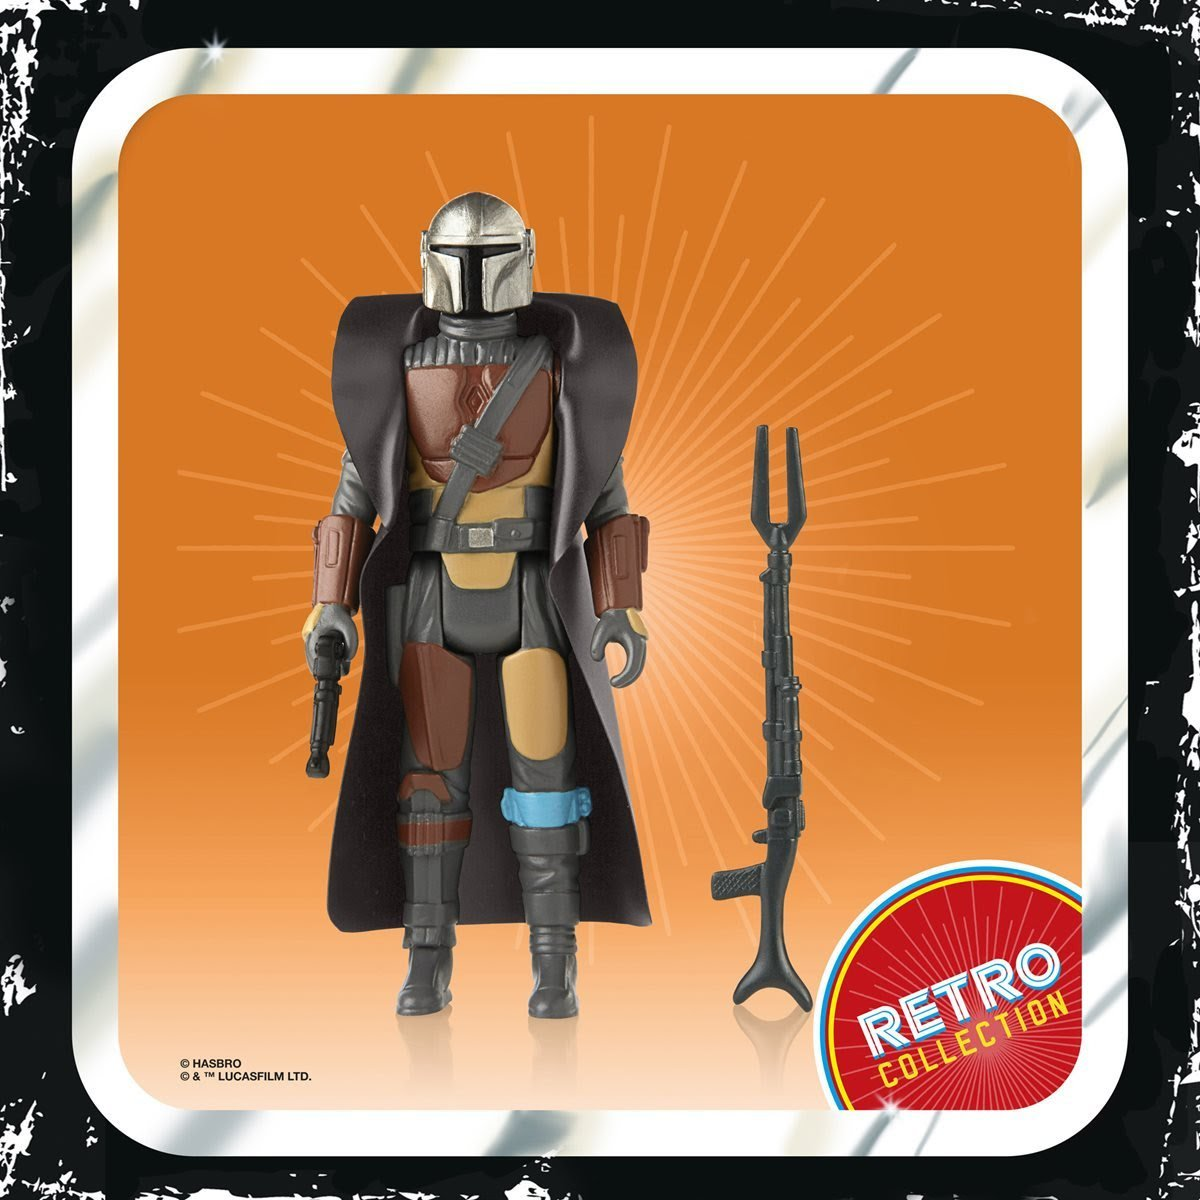 Star Wars The Mandalorian Retro Collection Action Figure